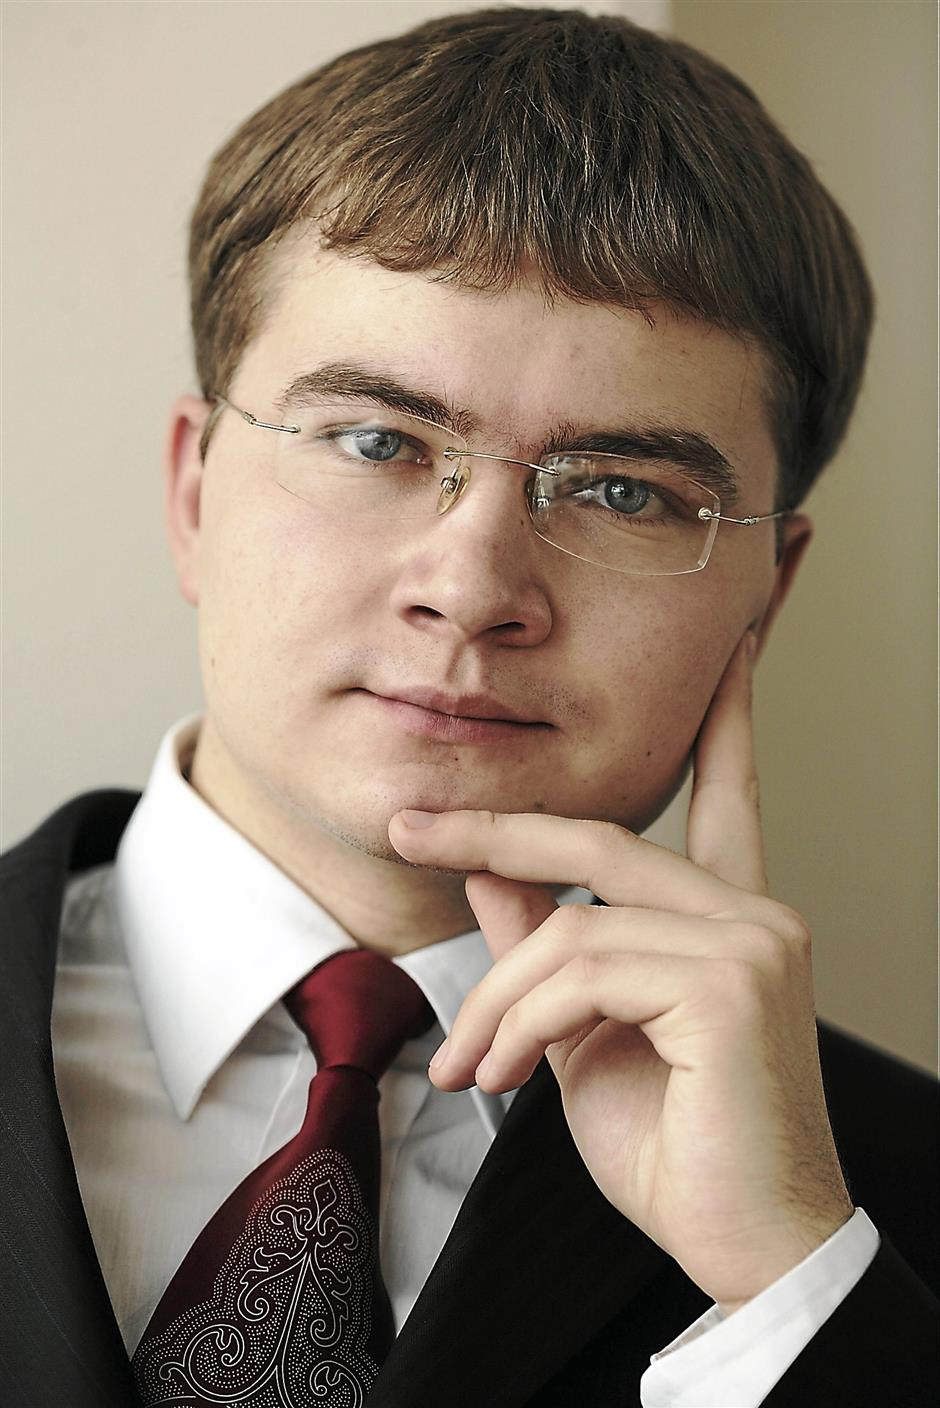 Kaspersky Lab's global research & analysis team principal security researcher, Vitaly Kamluk